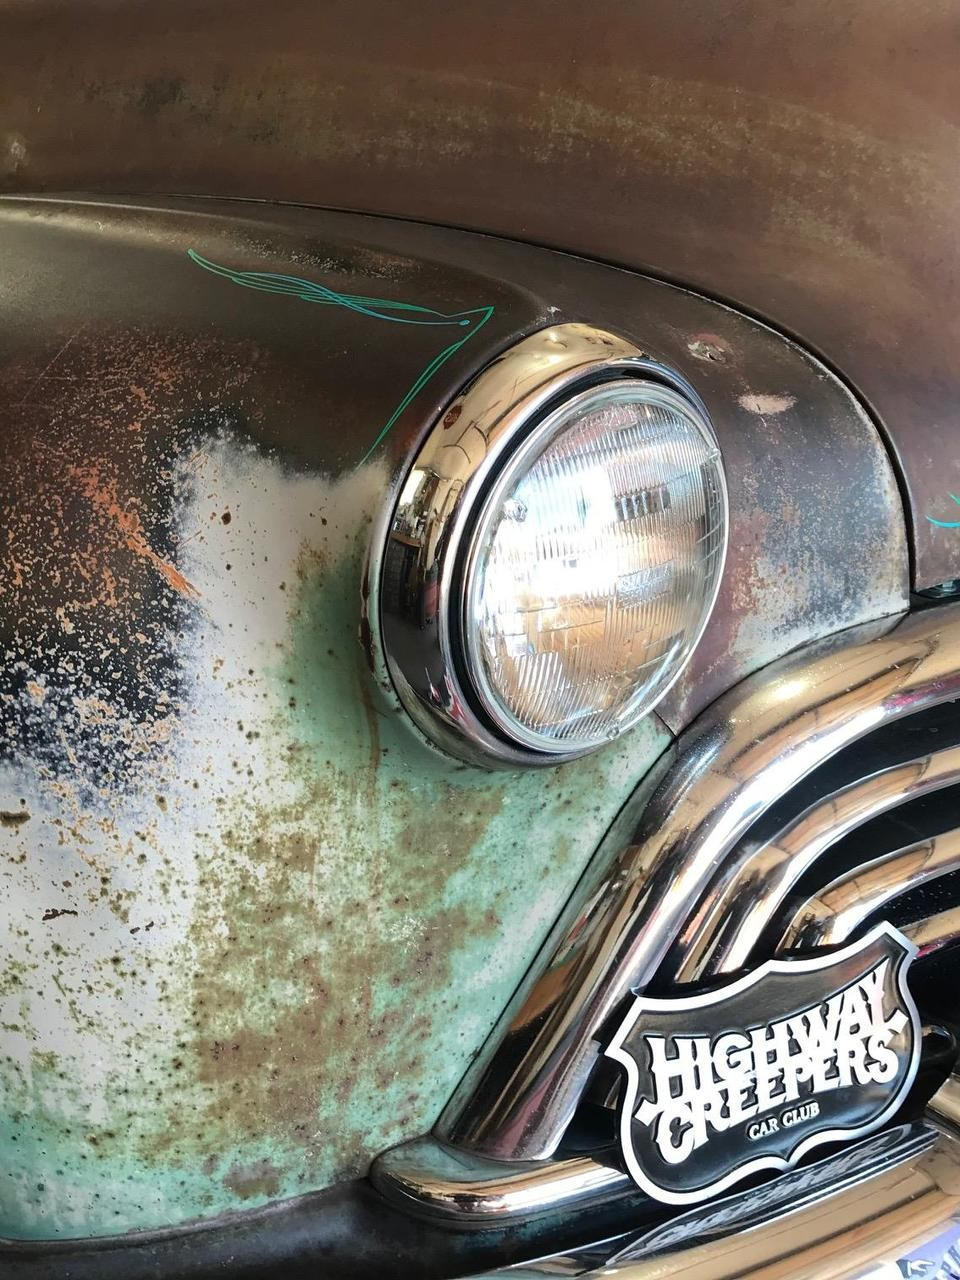 Custom Pinstriping And A Pin Up Contest Can Be Found At Annual Rock N Rods Car Show Khgi